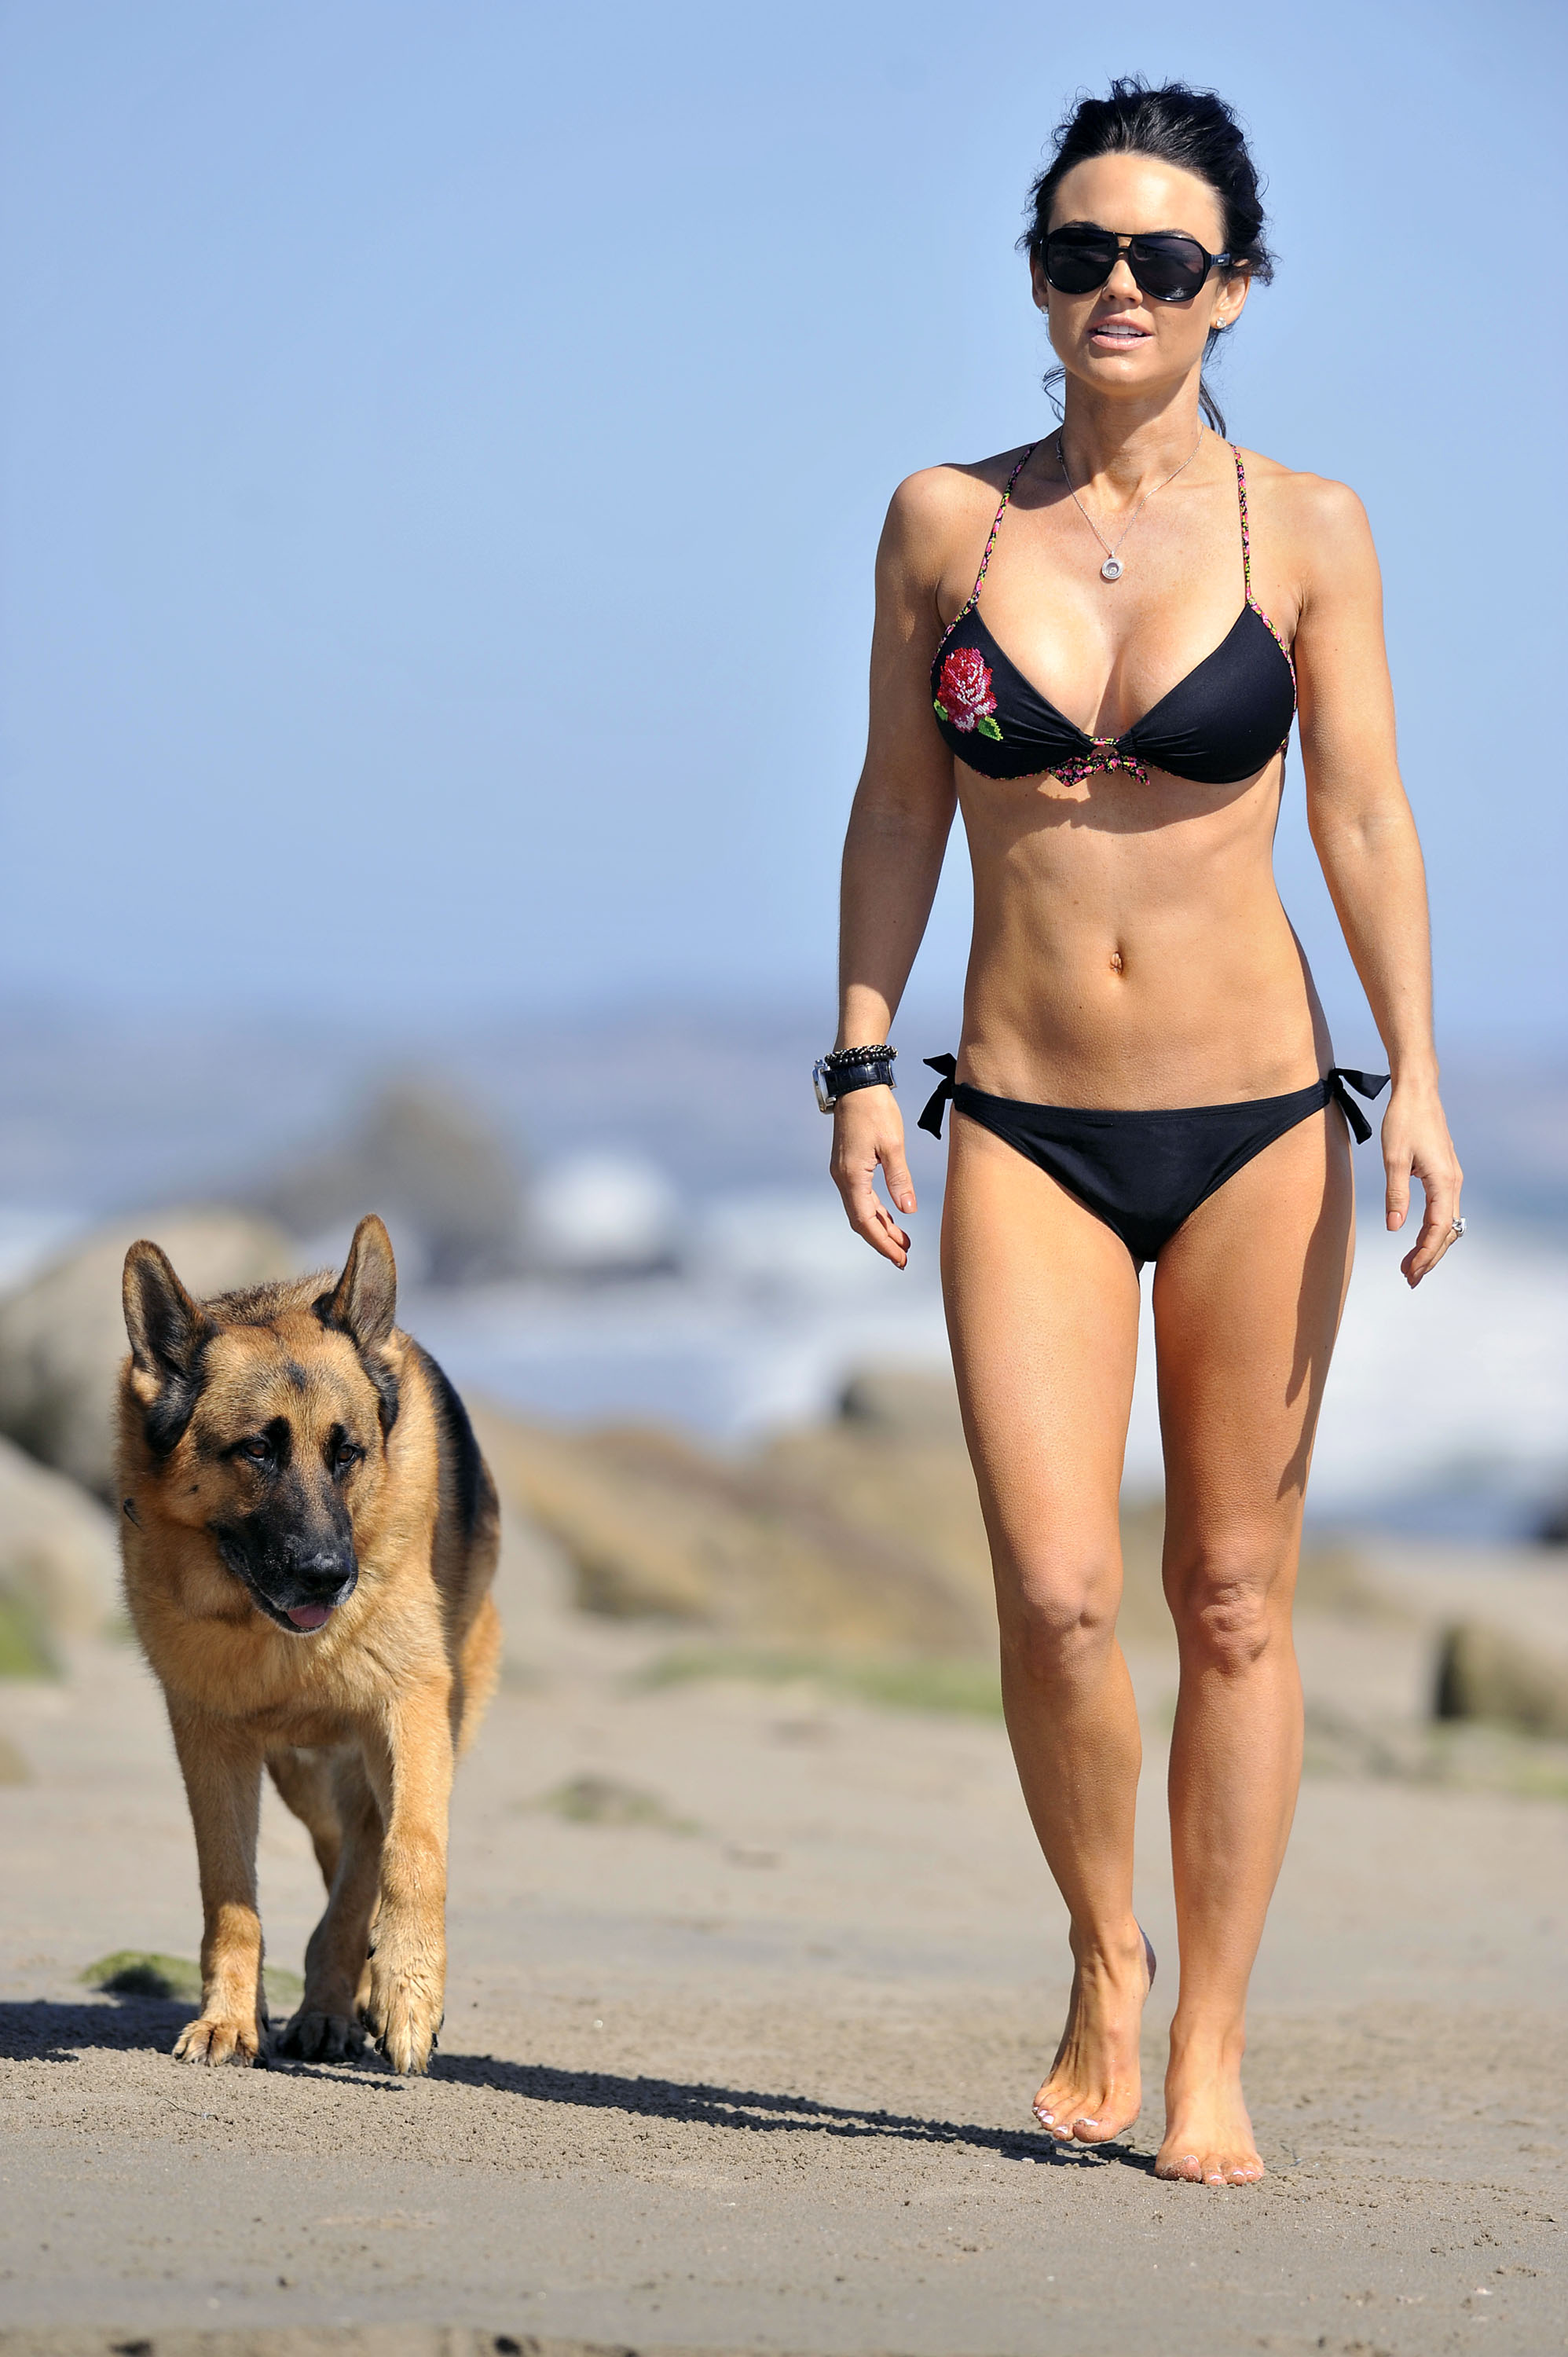 Watch Kelly Carlson video